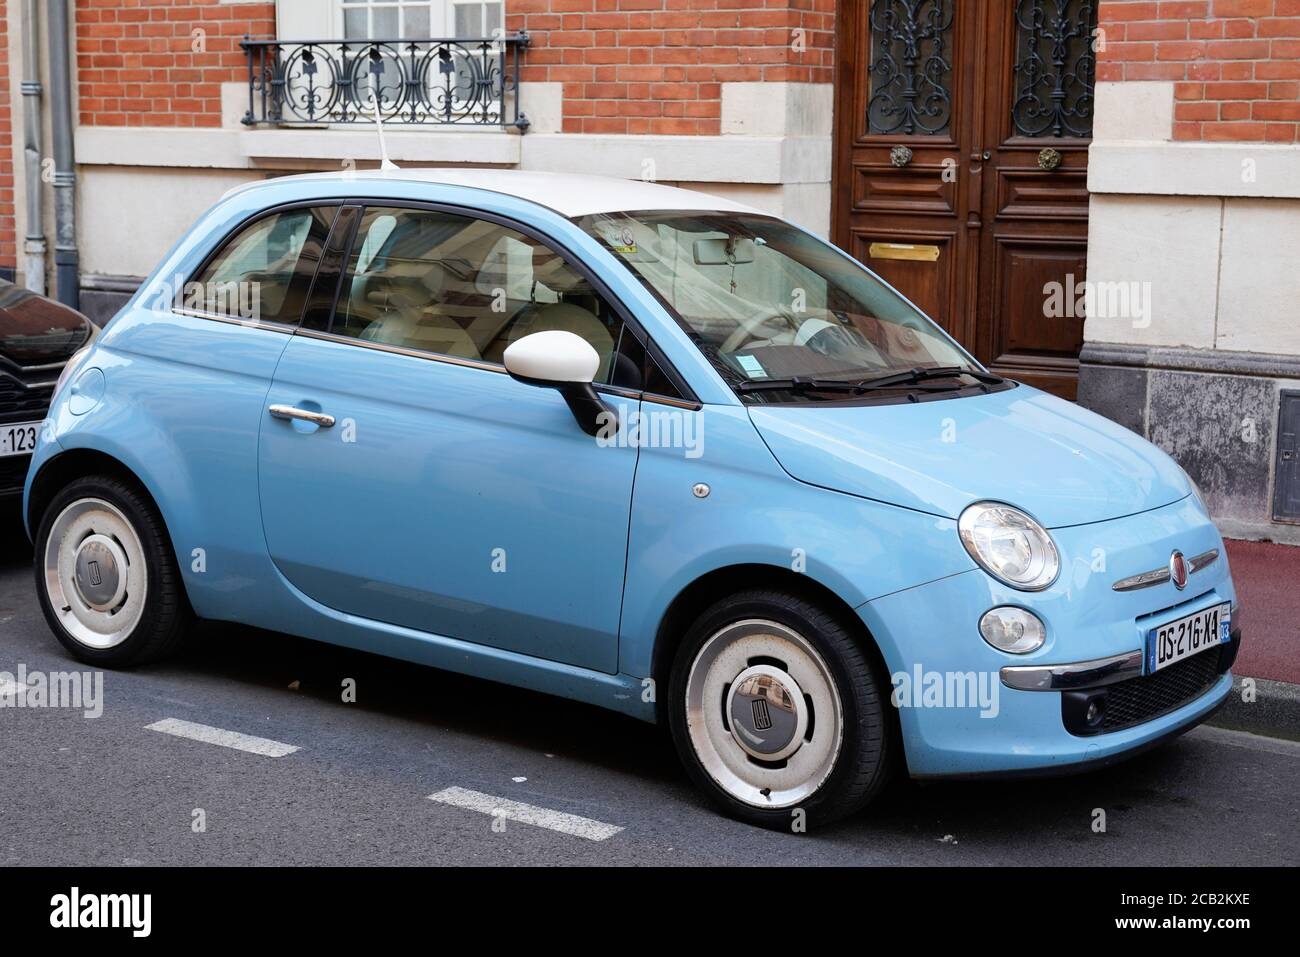 Page 2 Green Fiat 500 High Resolution Stock Photography And Images Alamy